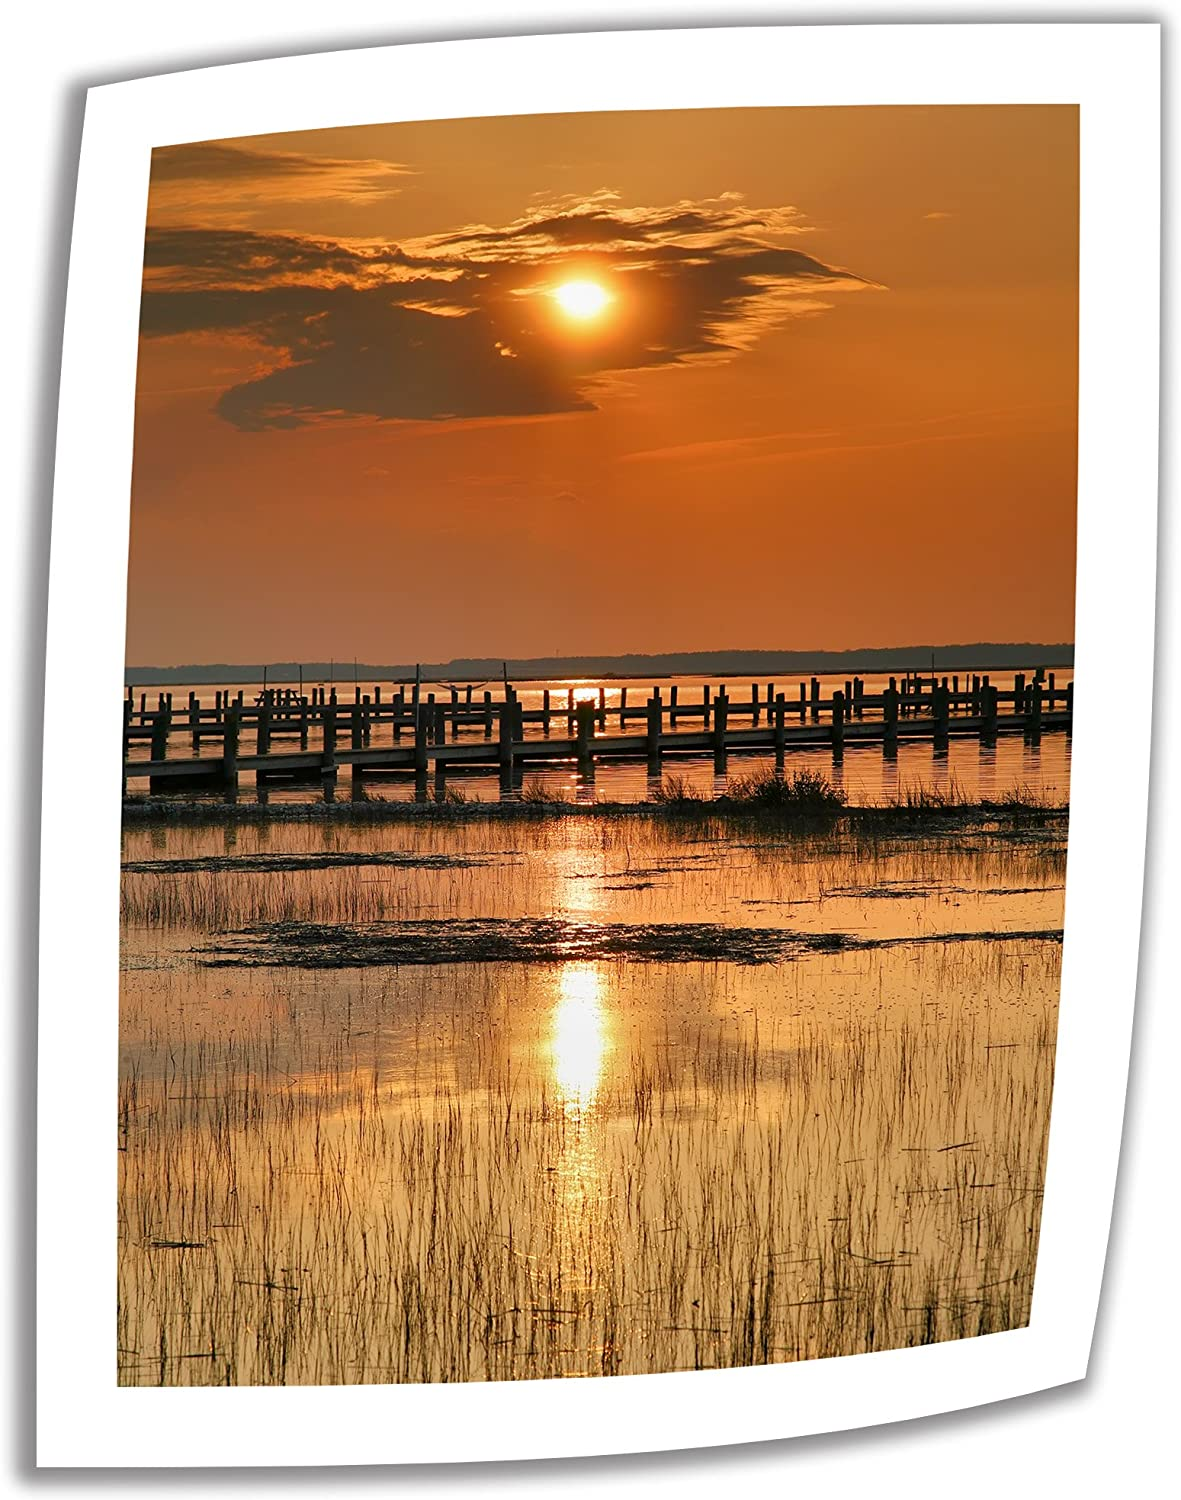 Art Wall 'Sunset Bay' Unwrapped Canvas Artwork by Steve Ainsworth, 28 by 22Inch